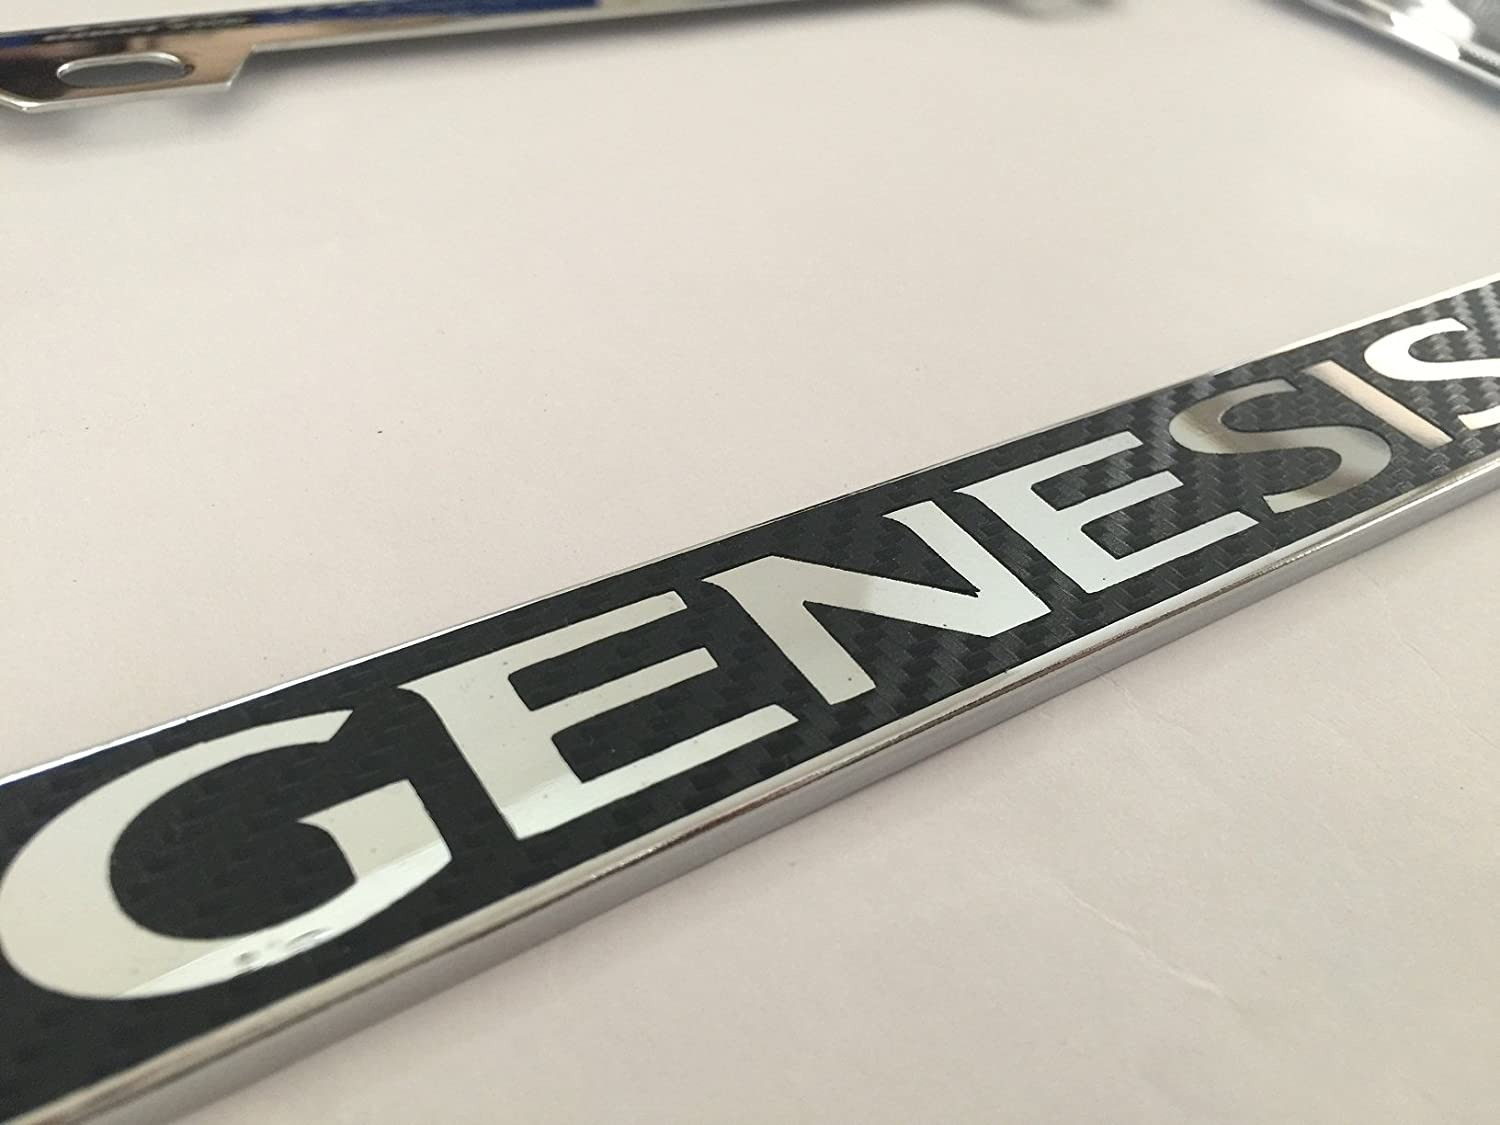 Genesis Coupe Black Carbon Fiber Vinyl Decal Reverse on Chrome Metal License Frame with Screw caps Included